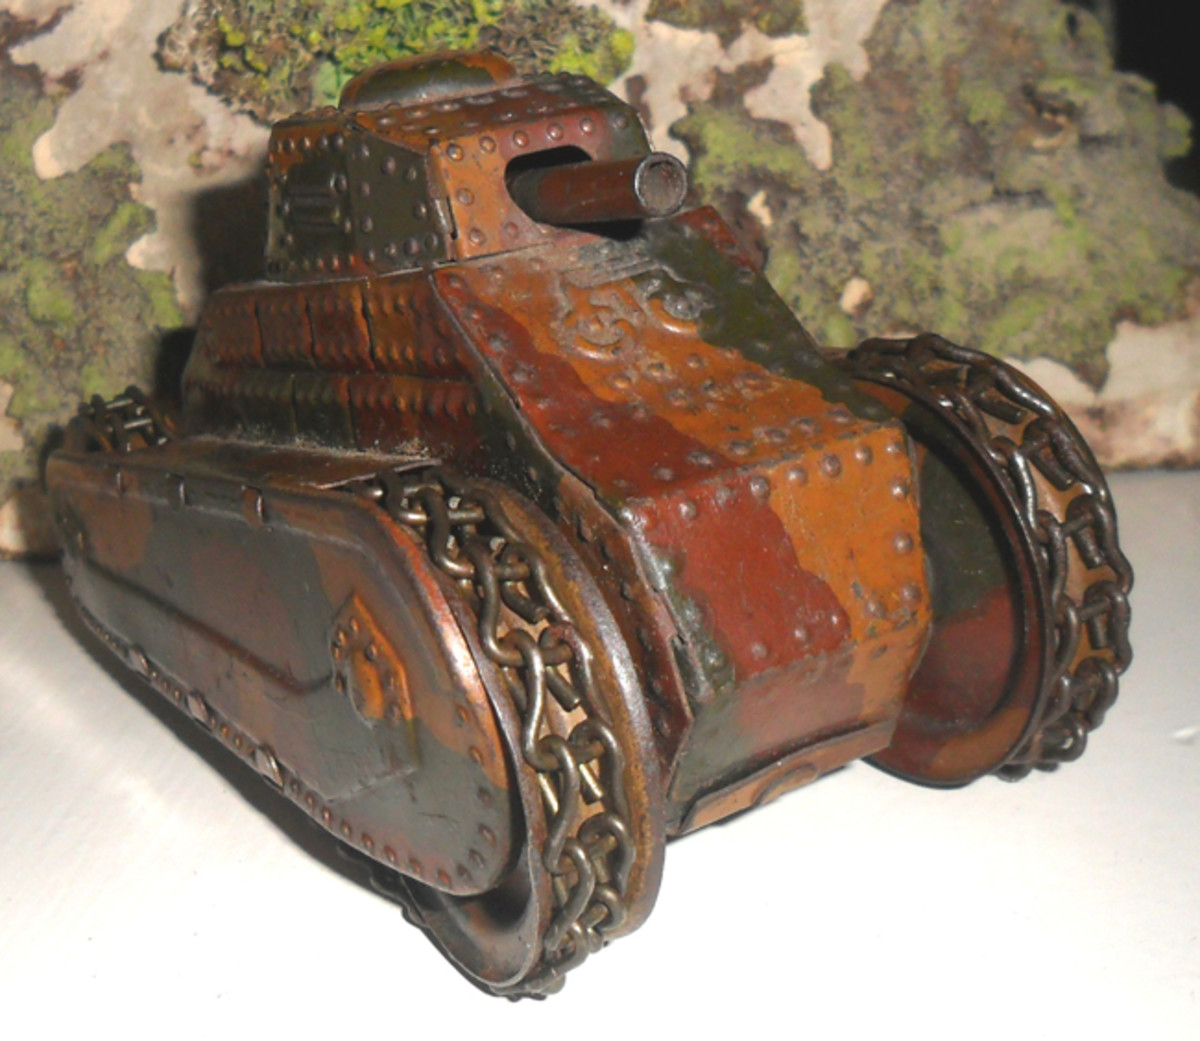 Panzer I made by Lineol.